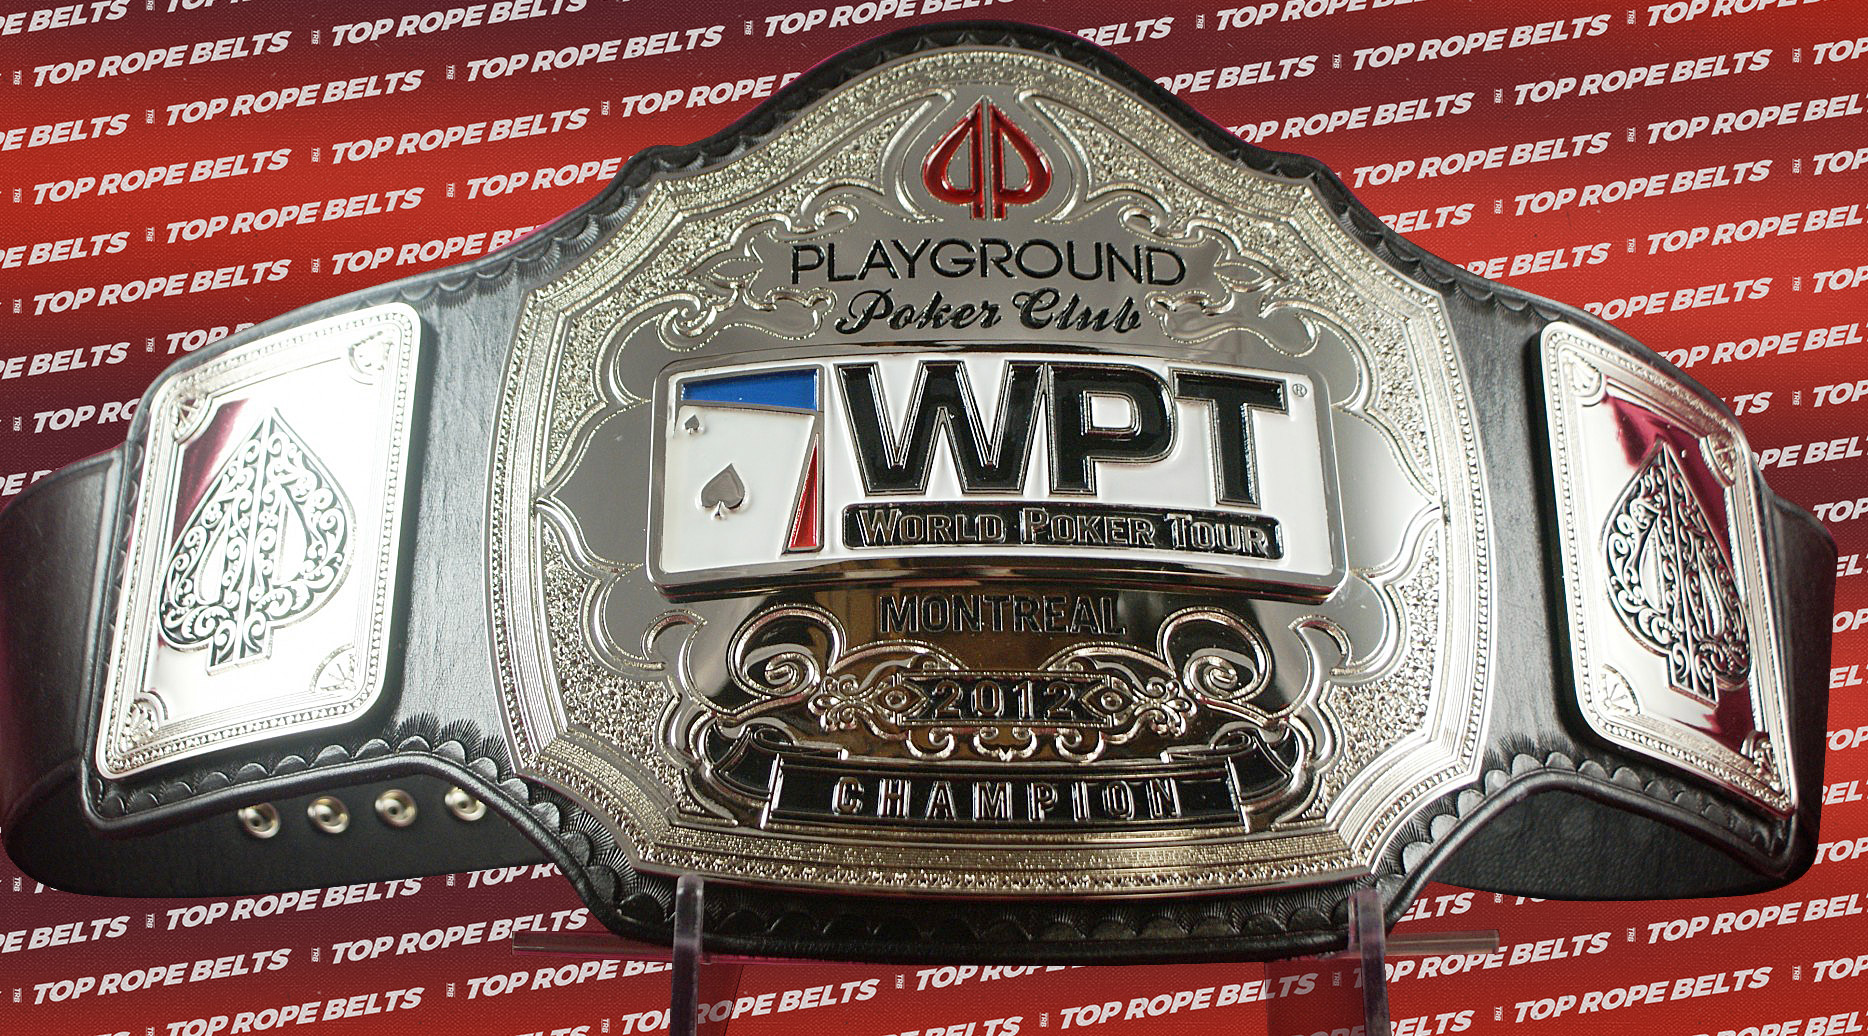 World Poker Tour Playground Poker Championship Belt Top